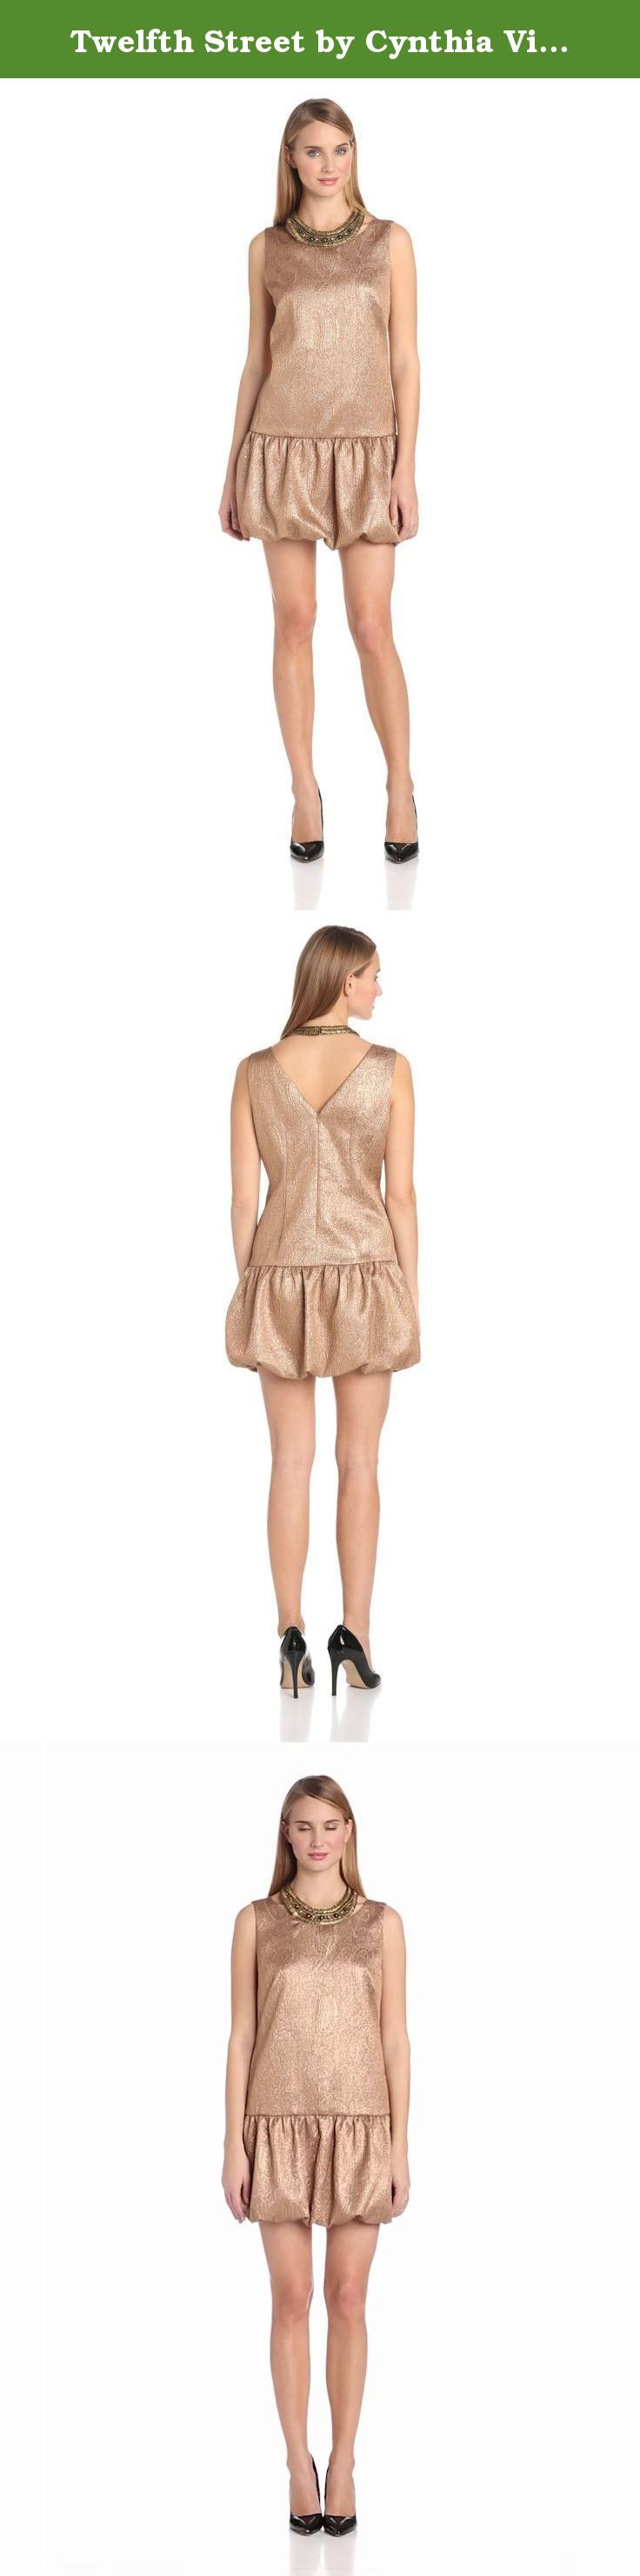 Twelfth Street by Cynthia Vincent Women's Embellished Drop Waist Dress, Gold, Large. Drop waist jacquard dress with embellished neckline.